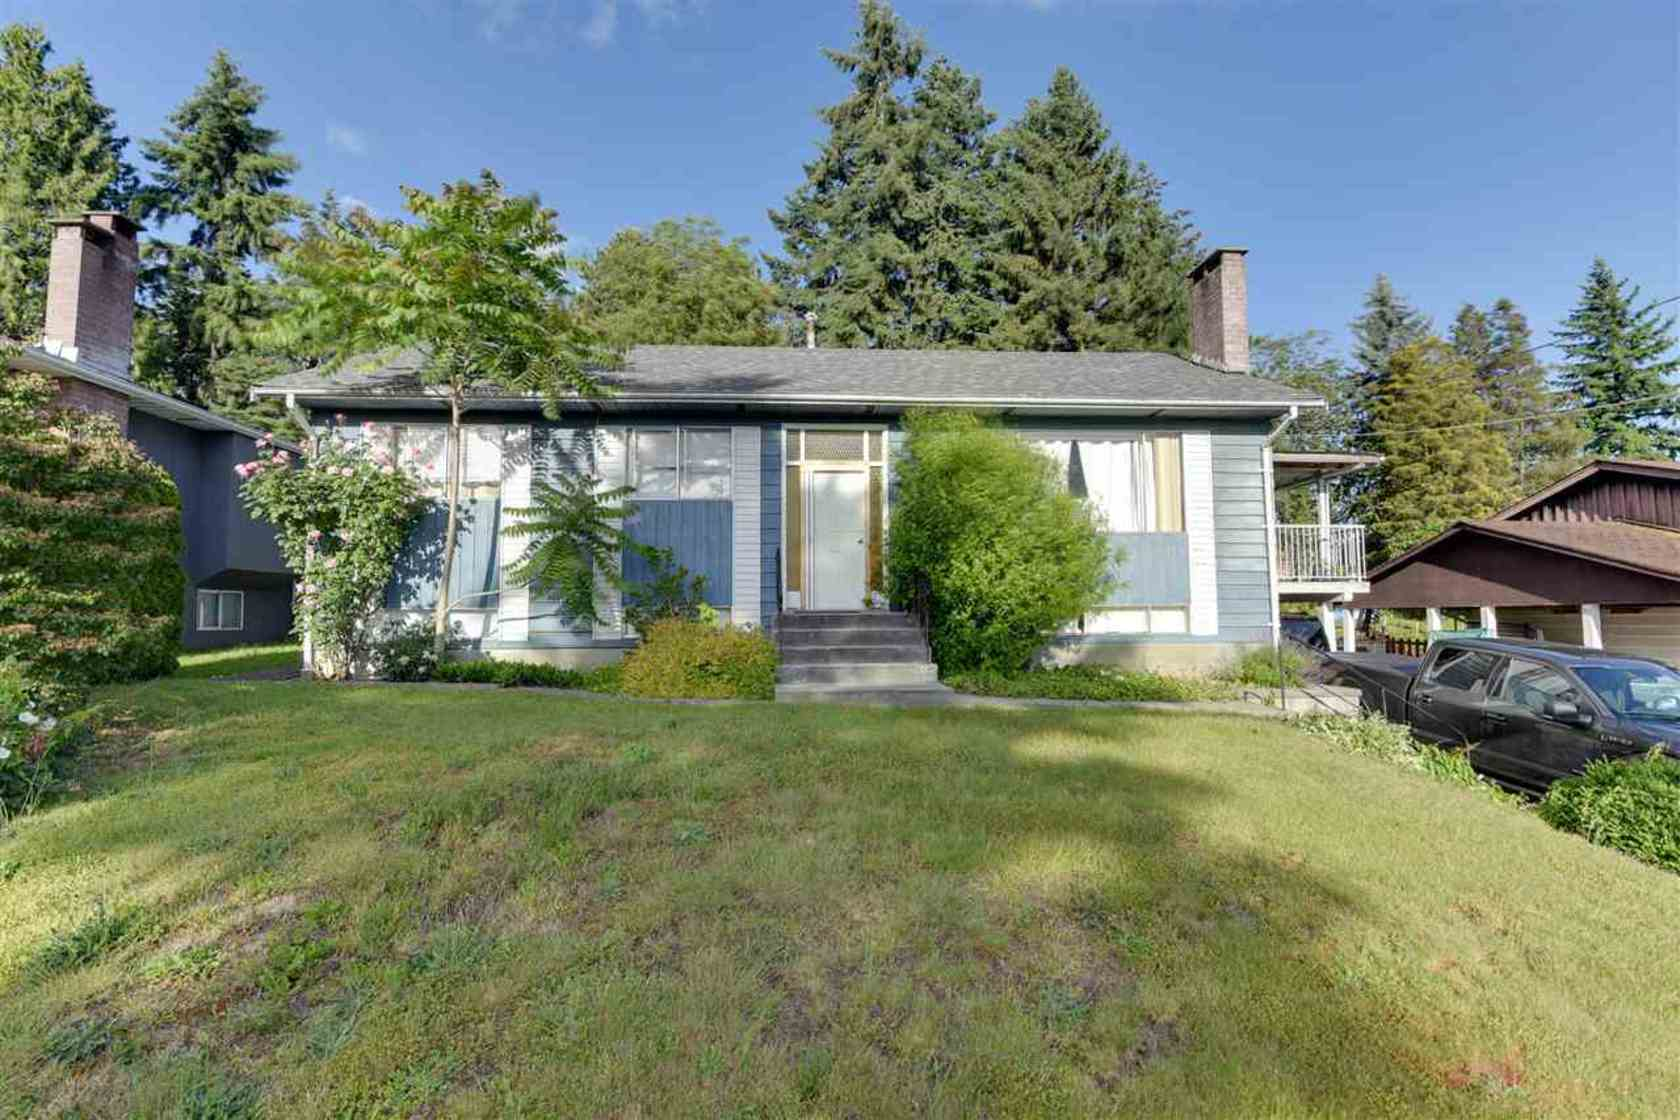 157-montgomery-street-cape-horn-coquitlam-01 at 157 Montgomery Street, Cape Horn, Coquitlam